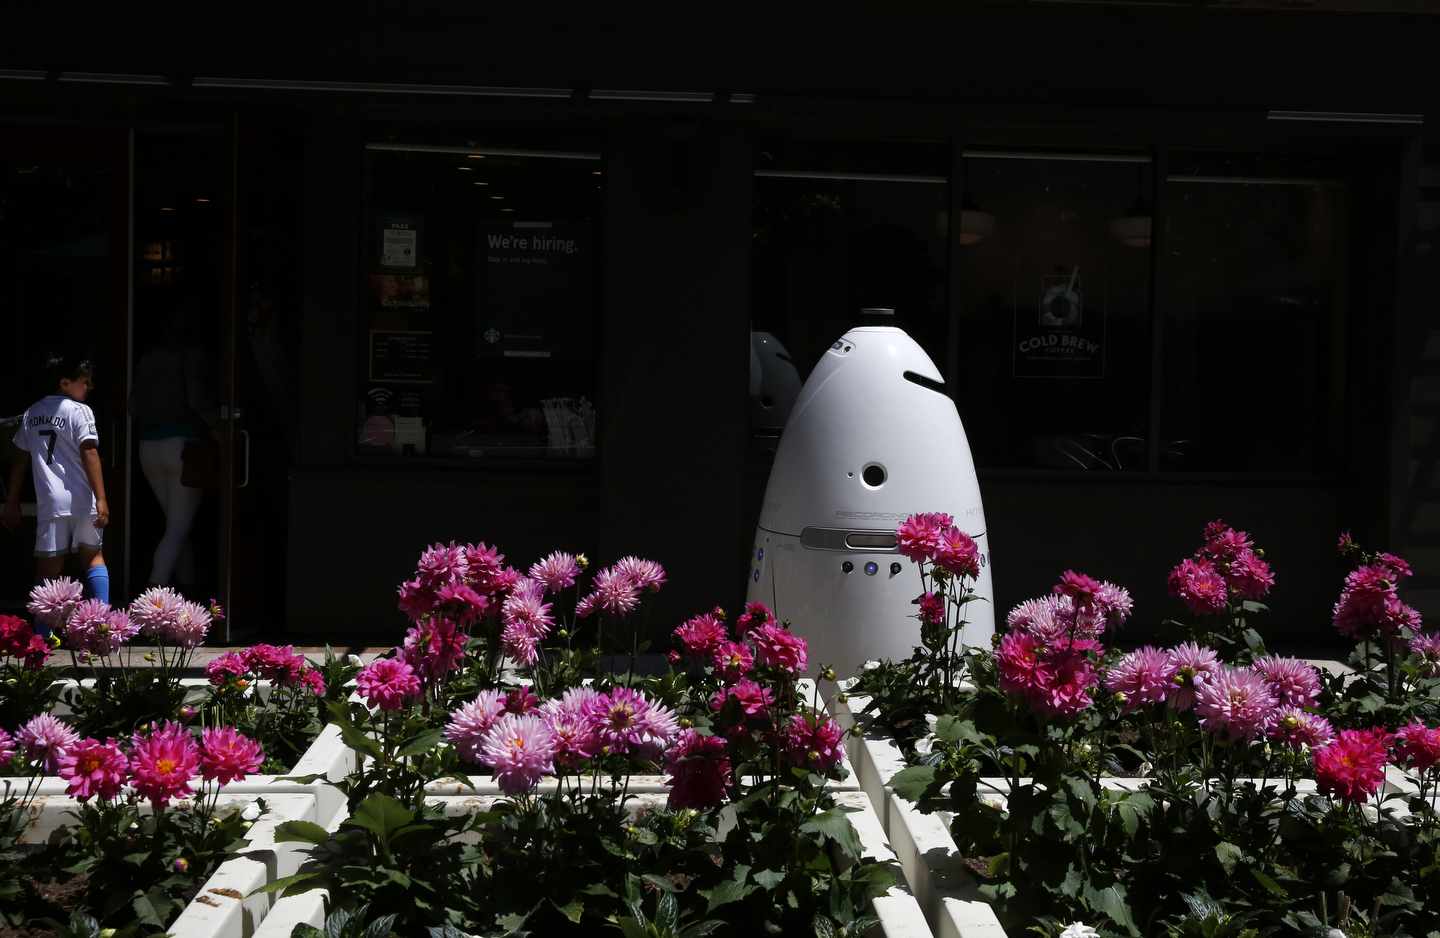 A Knightscope K5 autonomous security robot roams around the Stanford Shopping Center June 15, 2016 in Palo Alto, Calif.